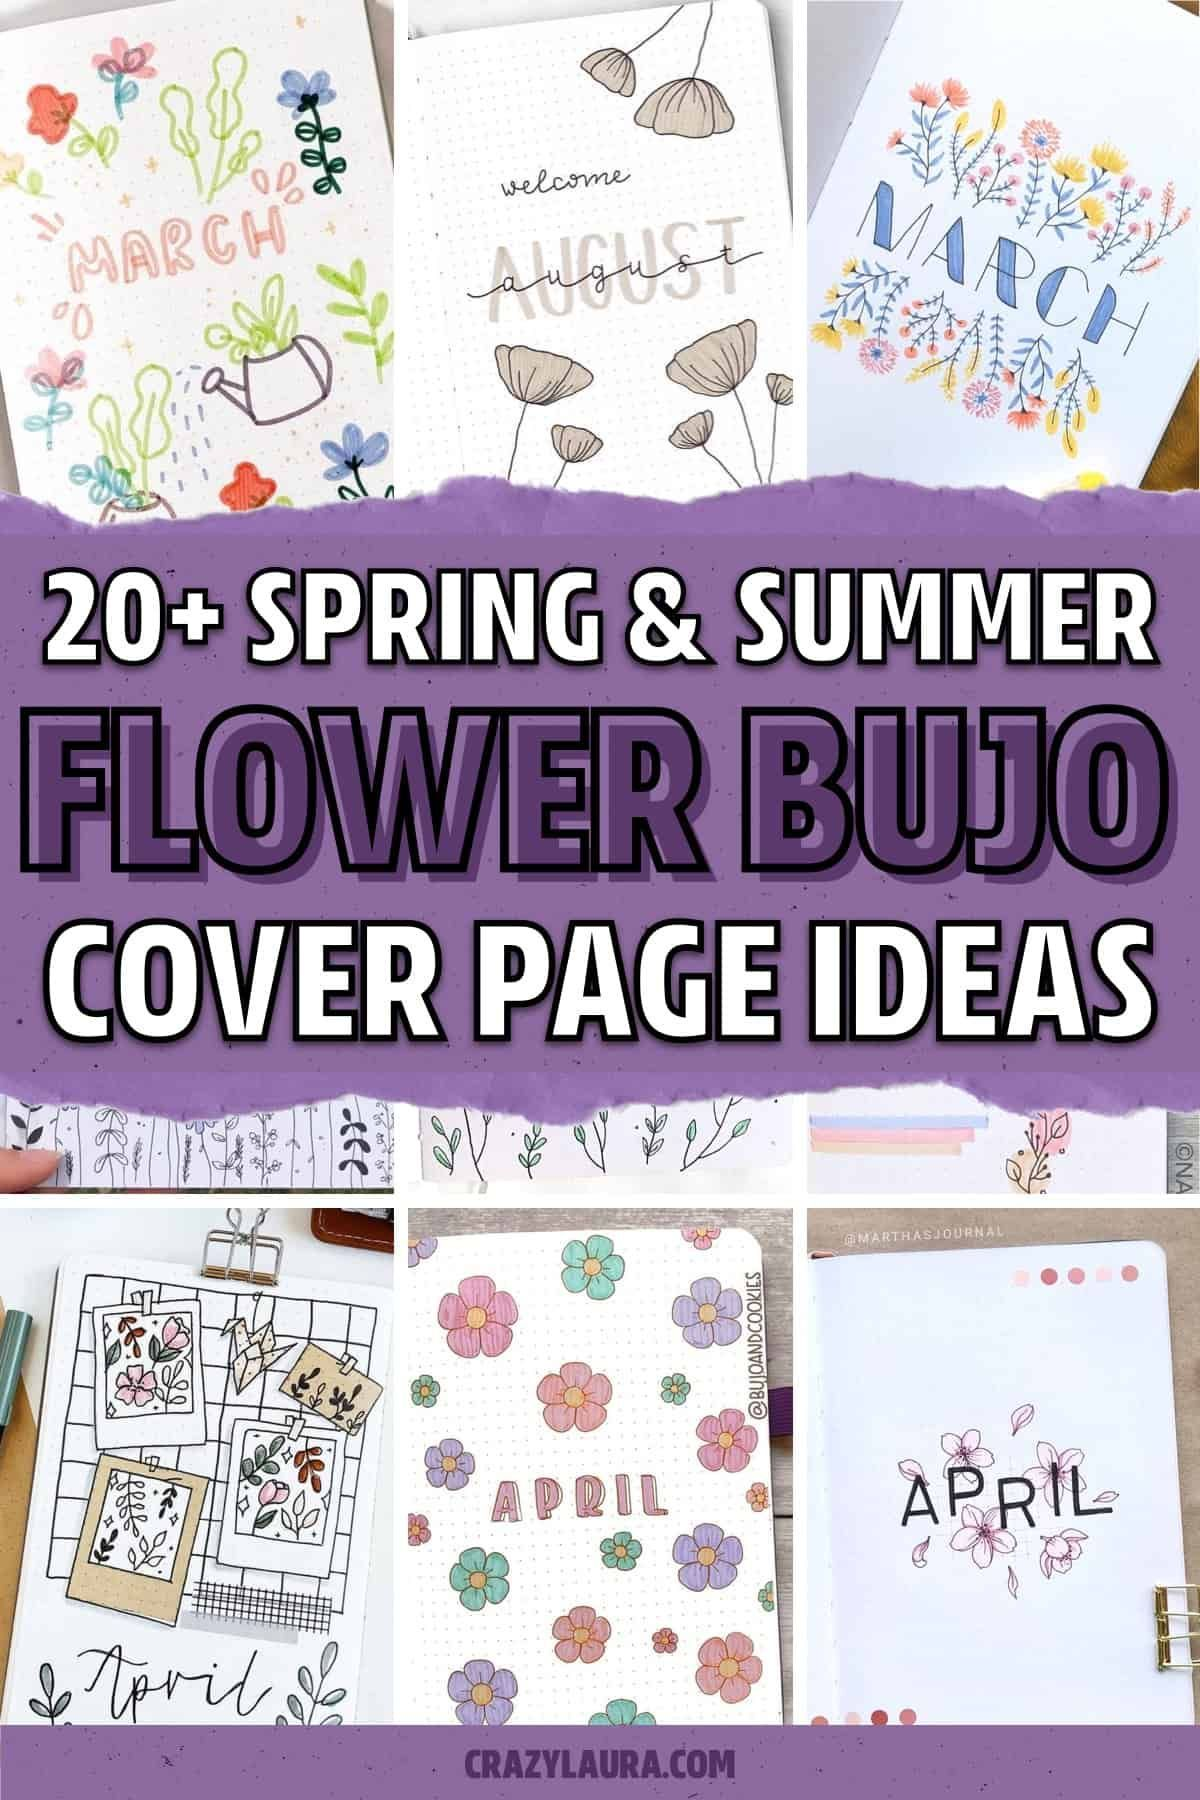 20 Best Bullet Journal Monthly Cover Ideas & Inspiration in 20 ...